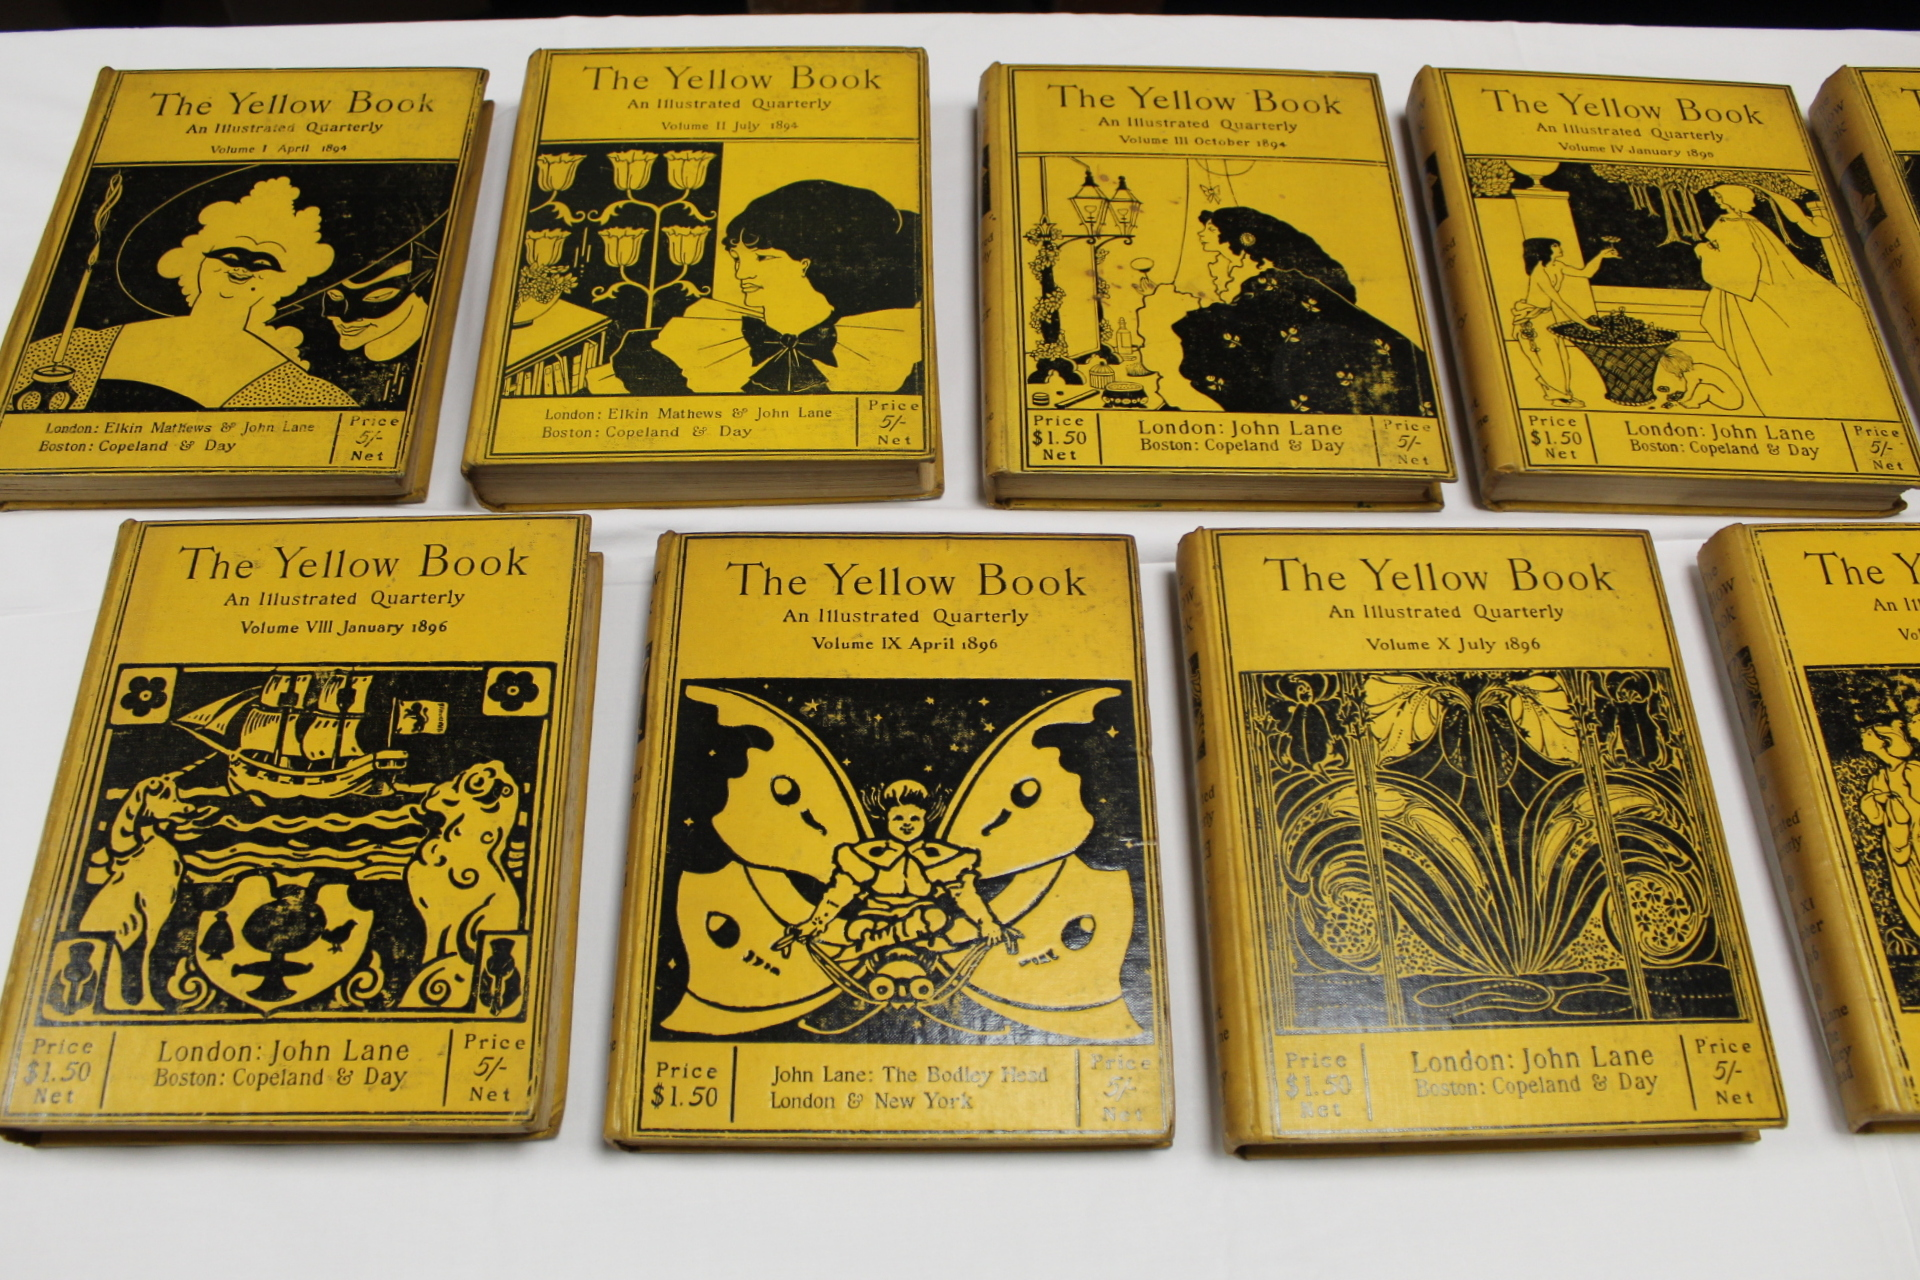 THE YELLOW BOOK.An Illustrated Quarterly. A set of 13 vols., many fine illus. Small quarto. - Image 8 of 45